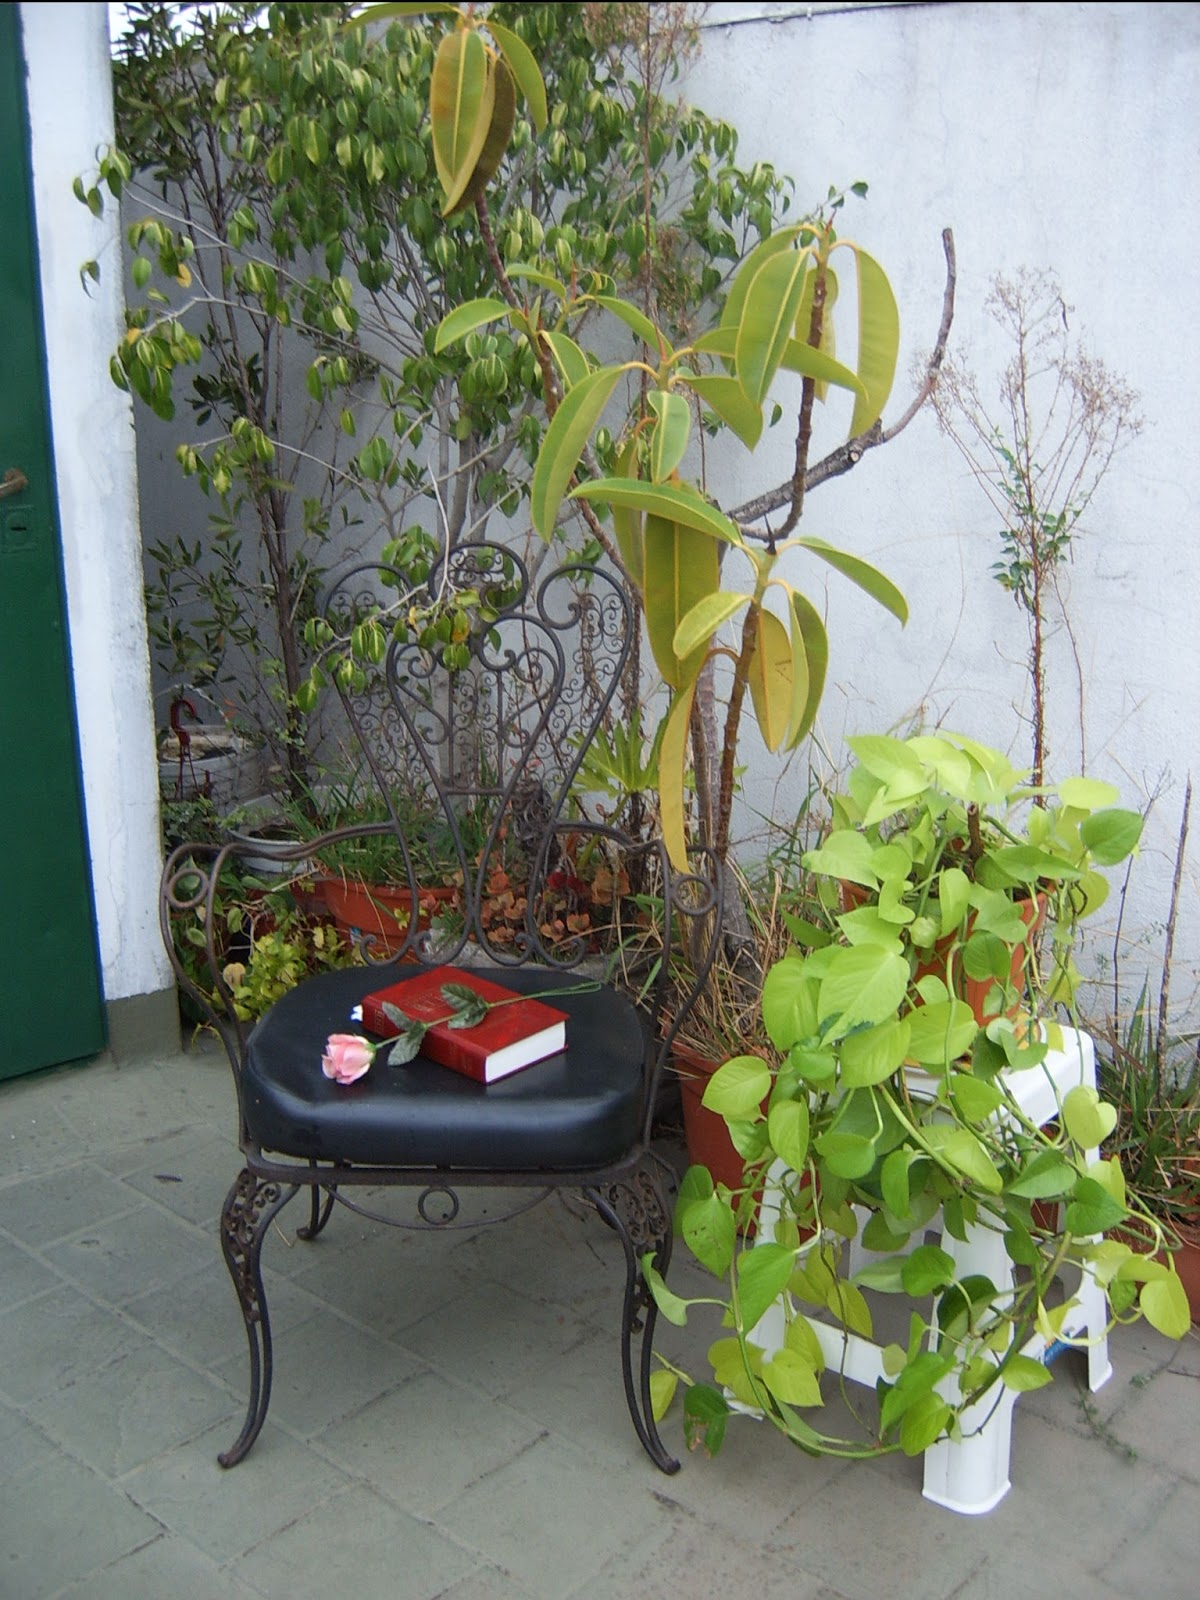 The existence of our natural environment merry for Terrace garden meaning